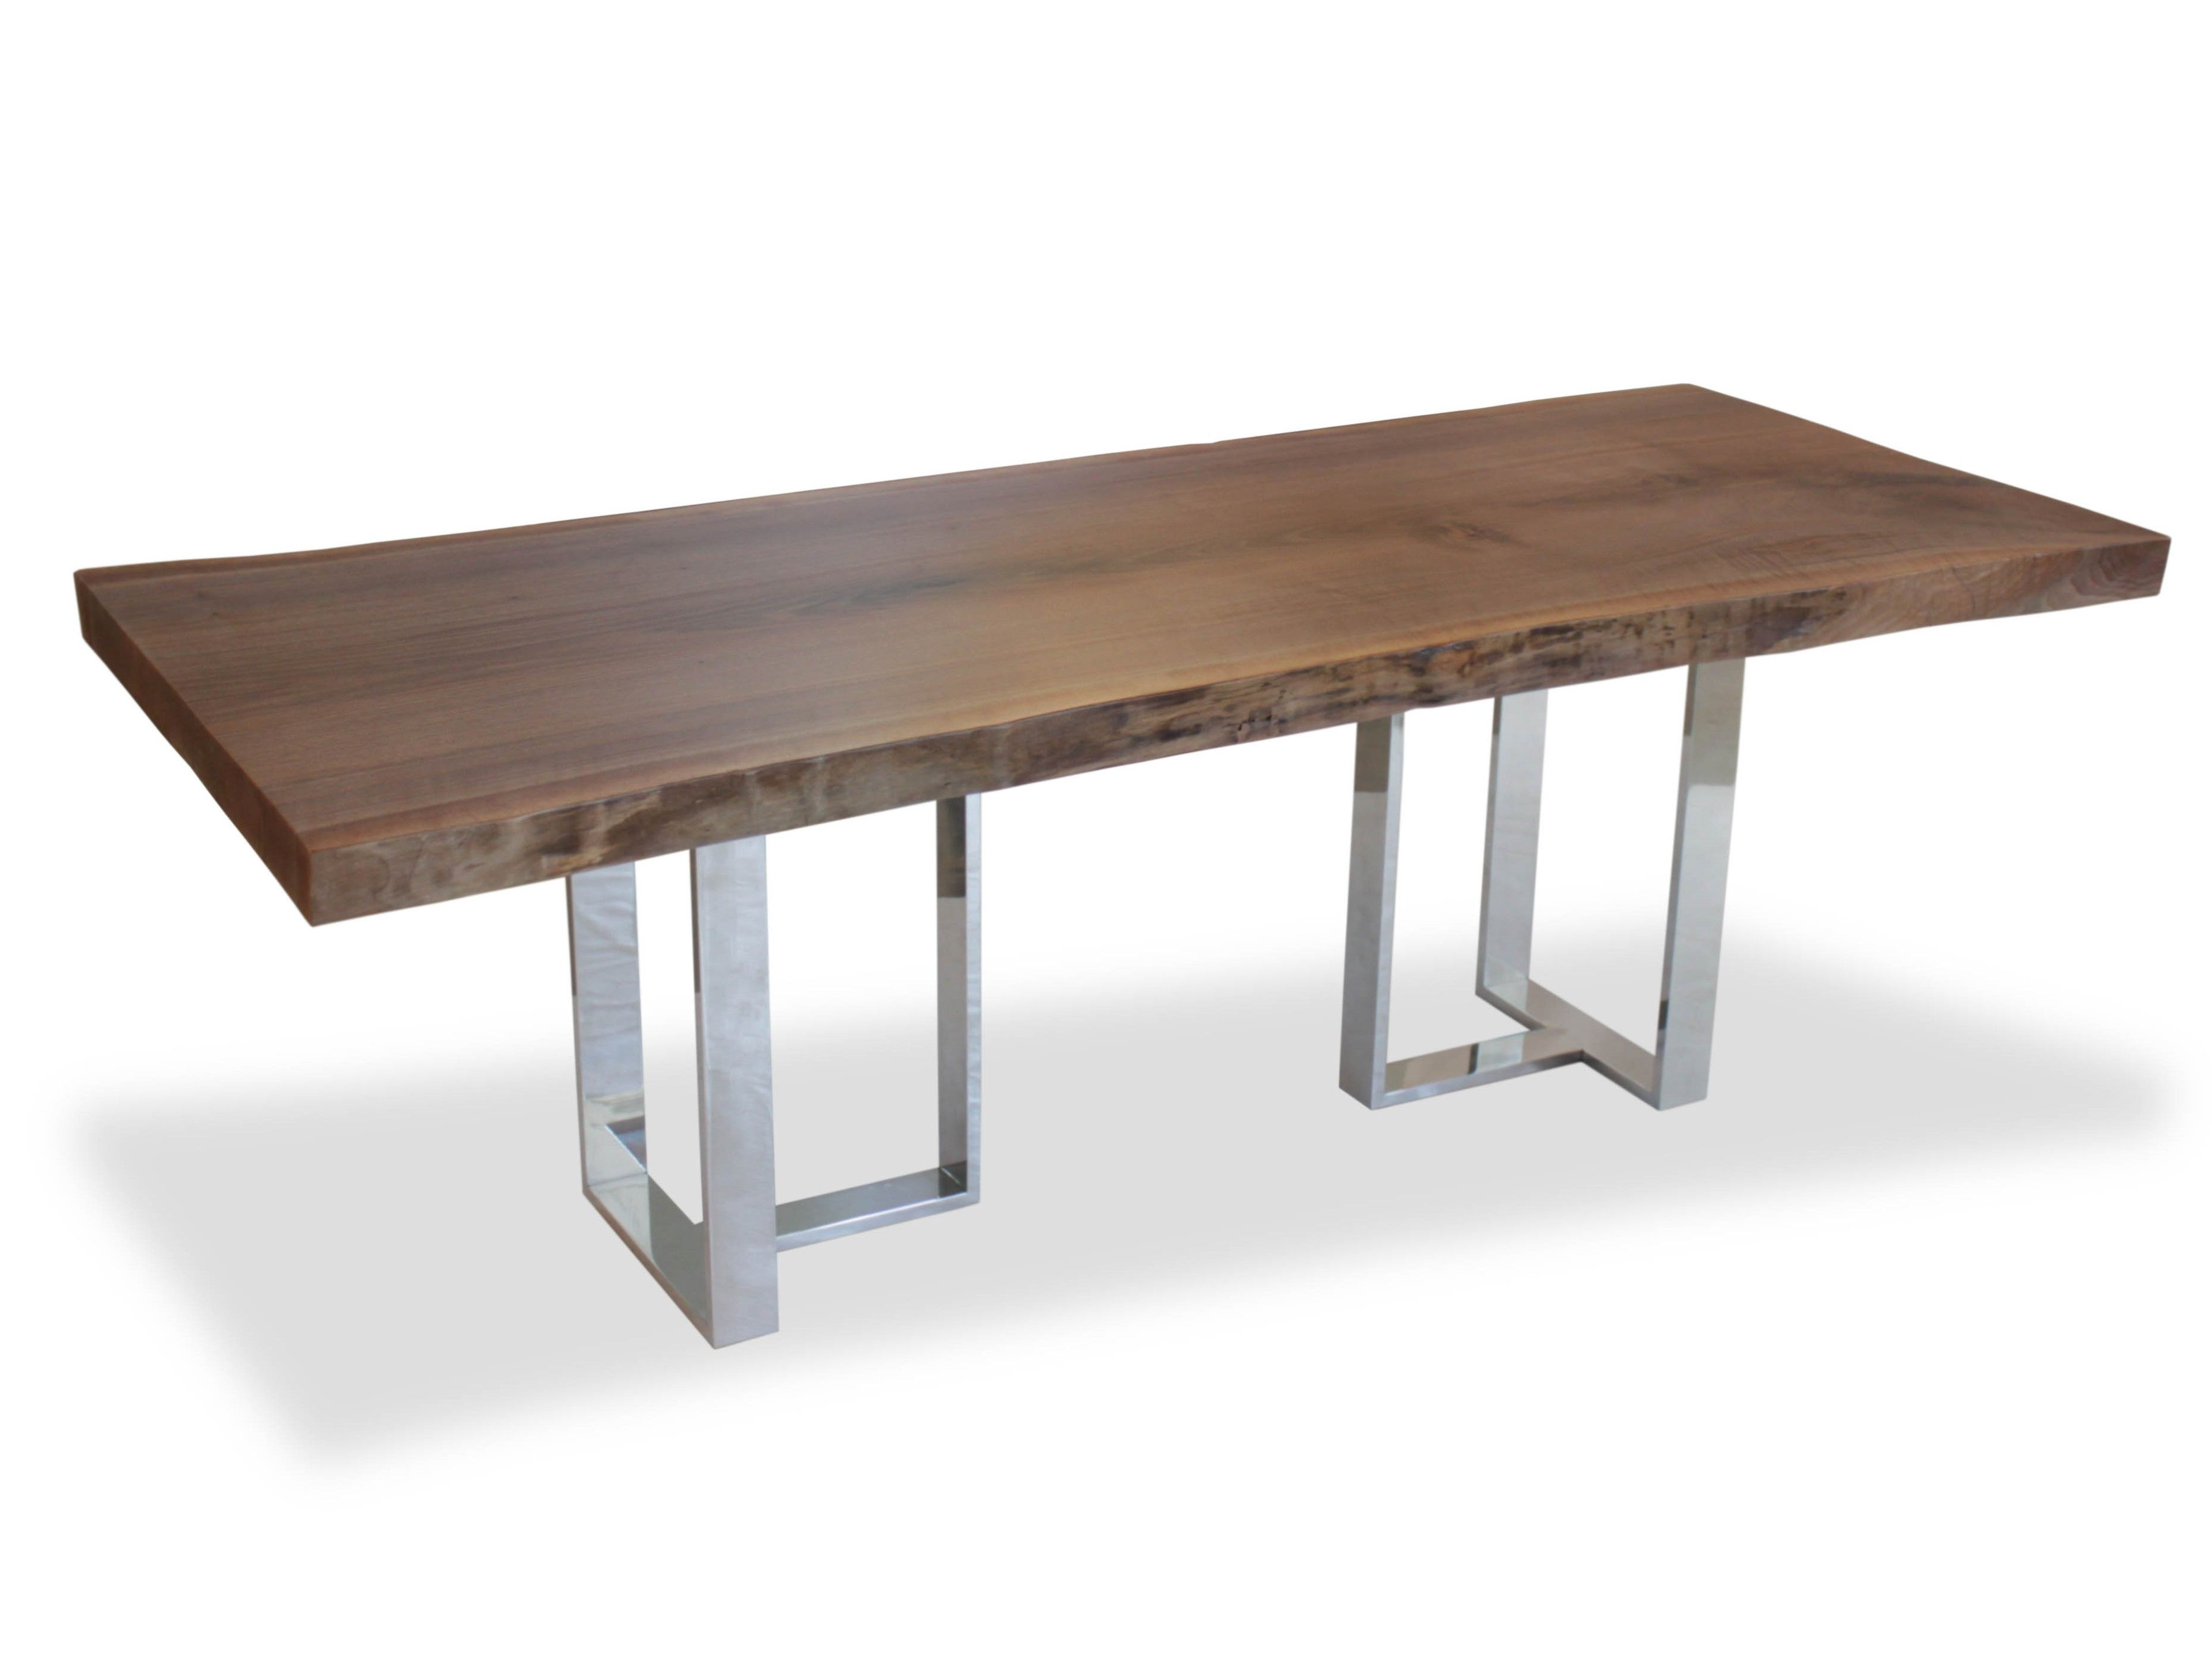 Single Slab Walnut Dining Table   Base In Polished Aluminum   Contemporary  Industrial Rustic / Folk Organic Dining Room Tables   Dering Hall